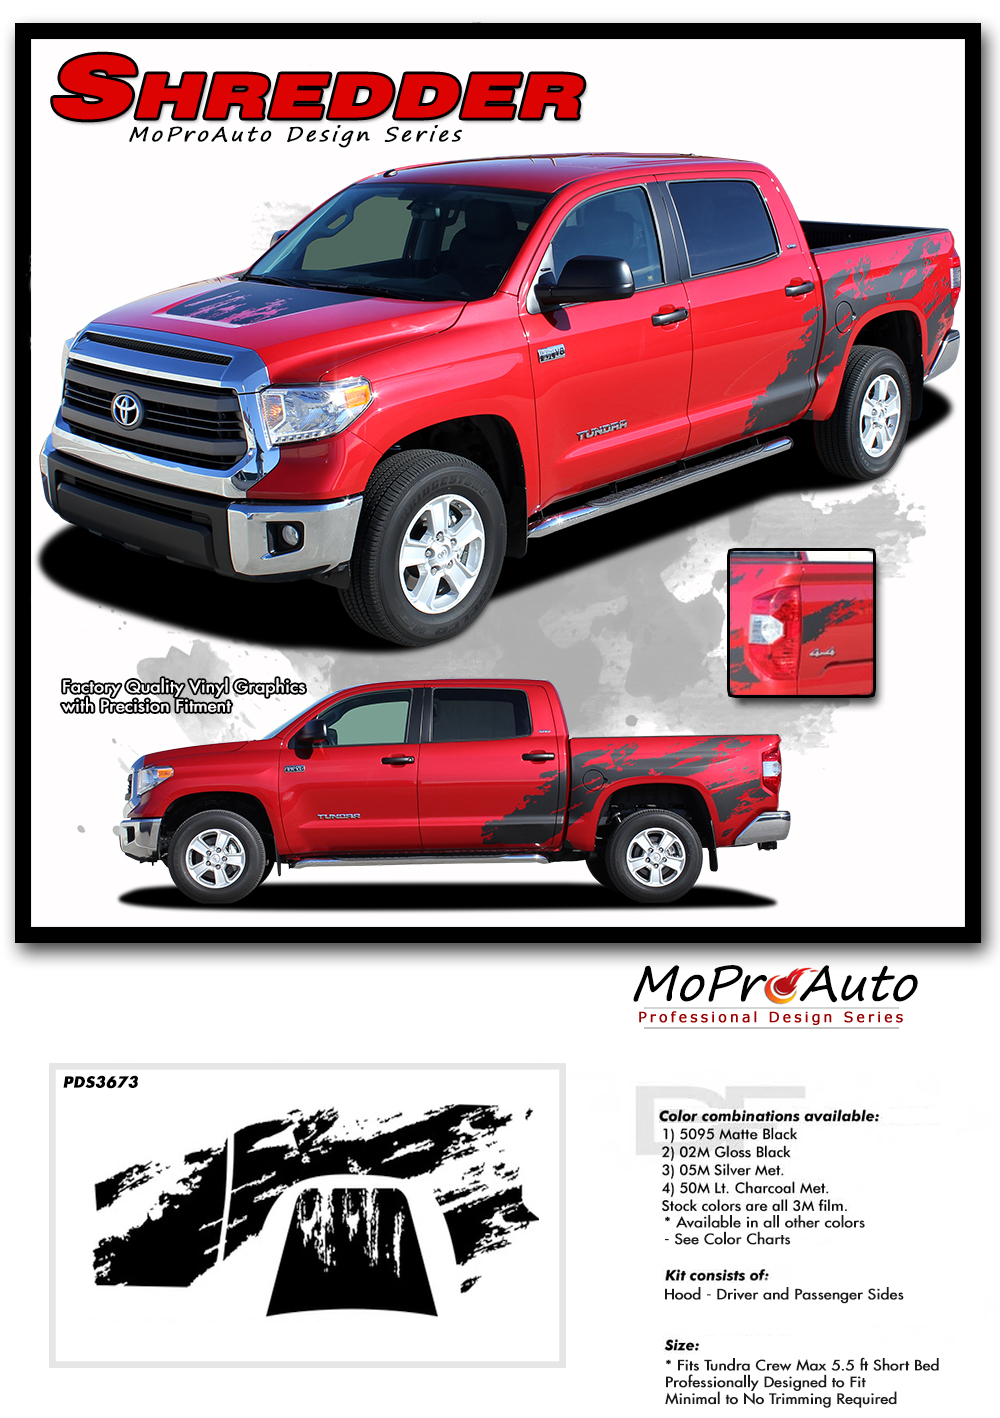 SHREDDER TOYOTA TUNDRA -  Vinyl Graphics Stripes and Decals Kit